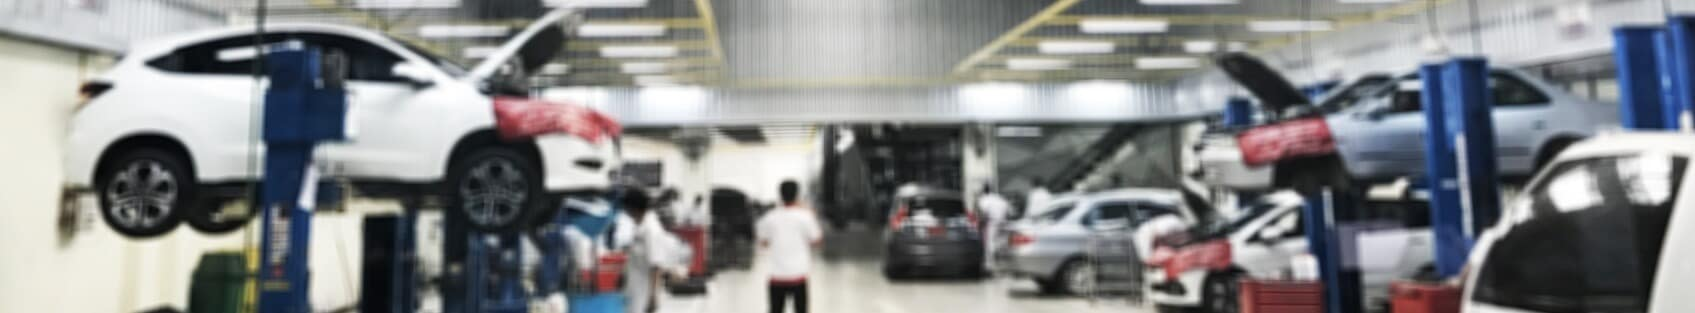 Reliable Auto Care on Site